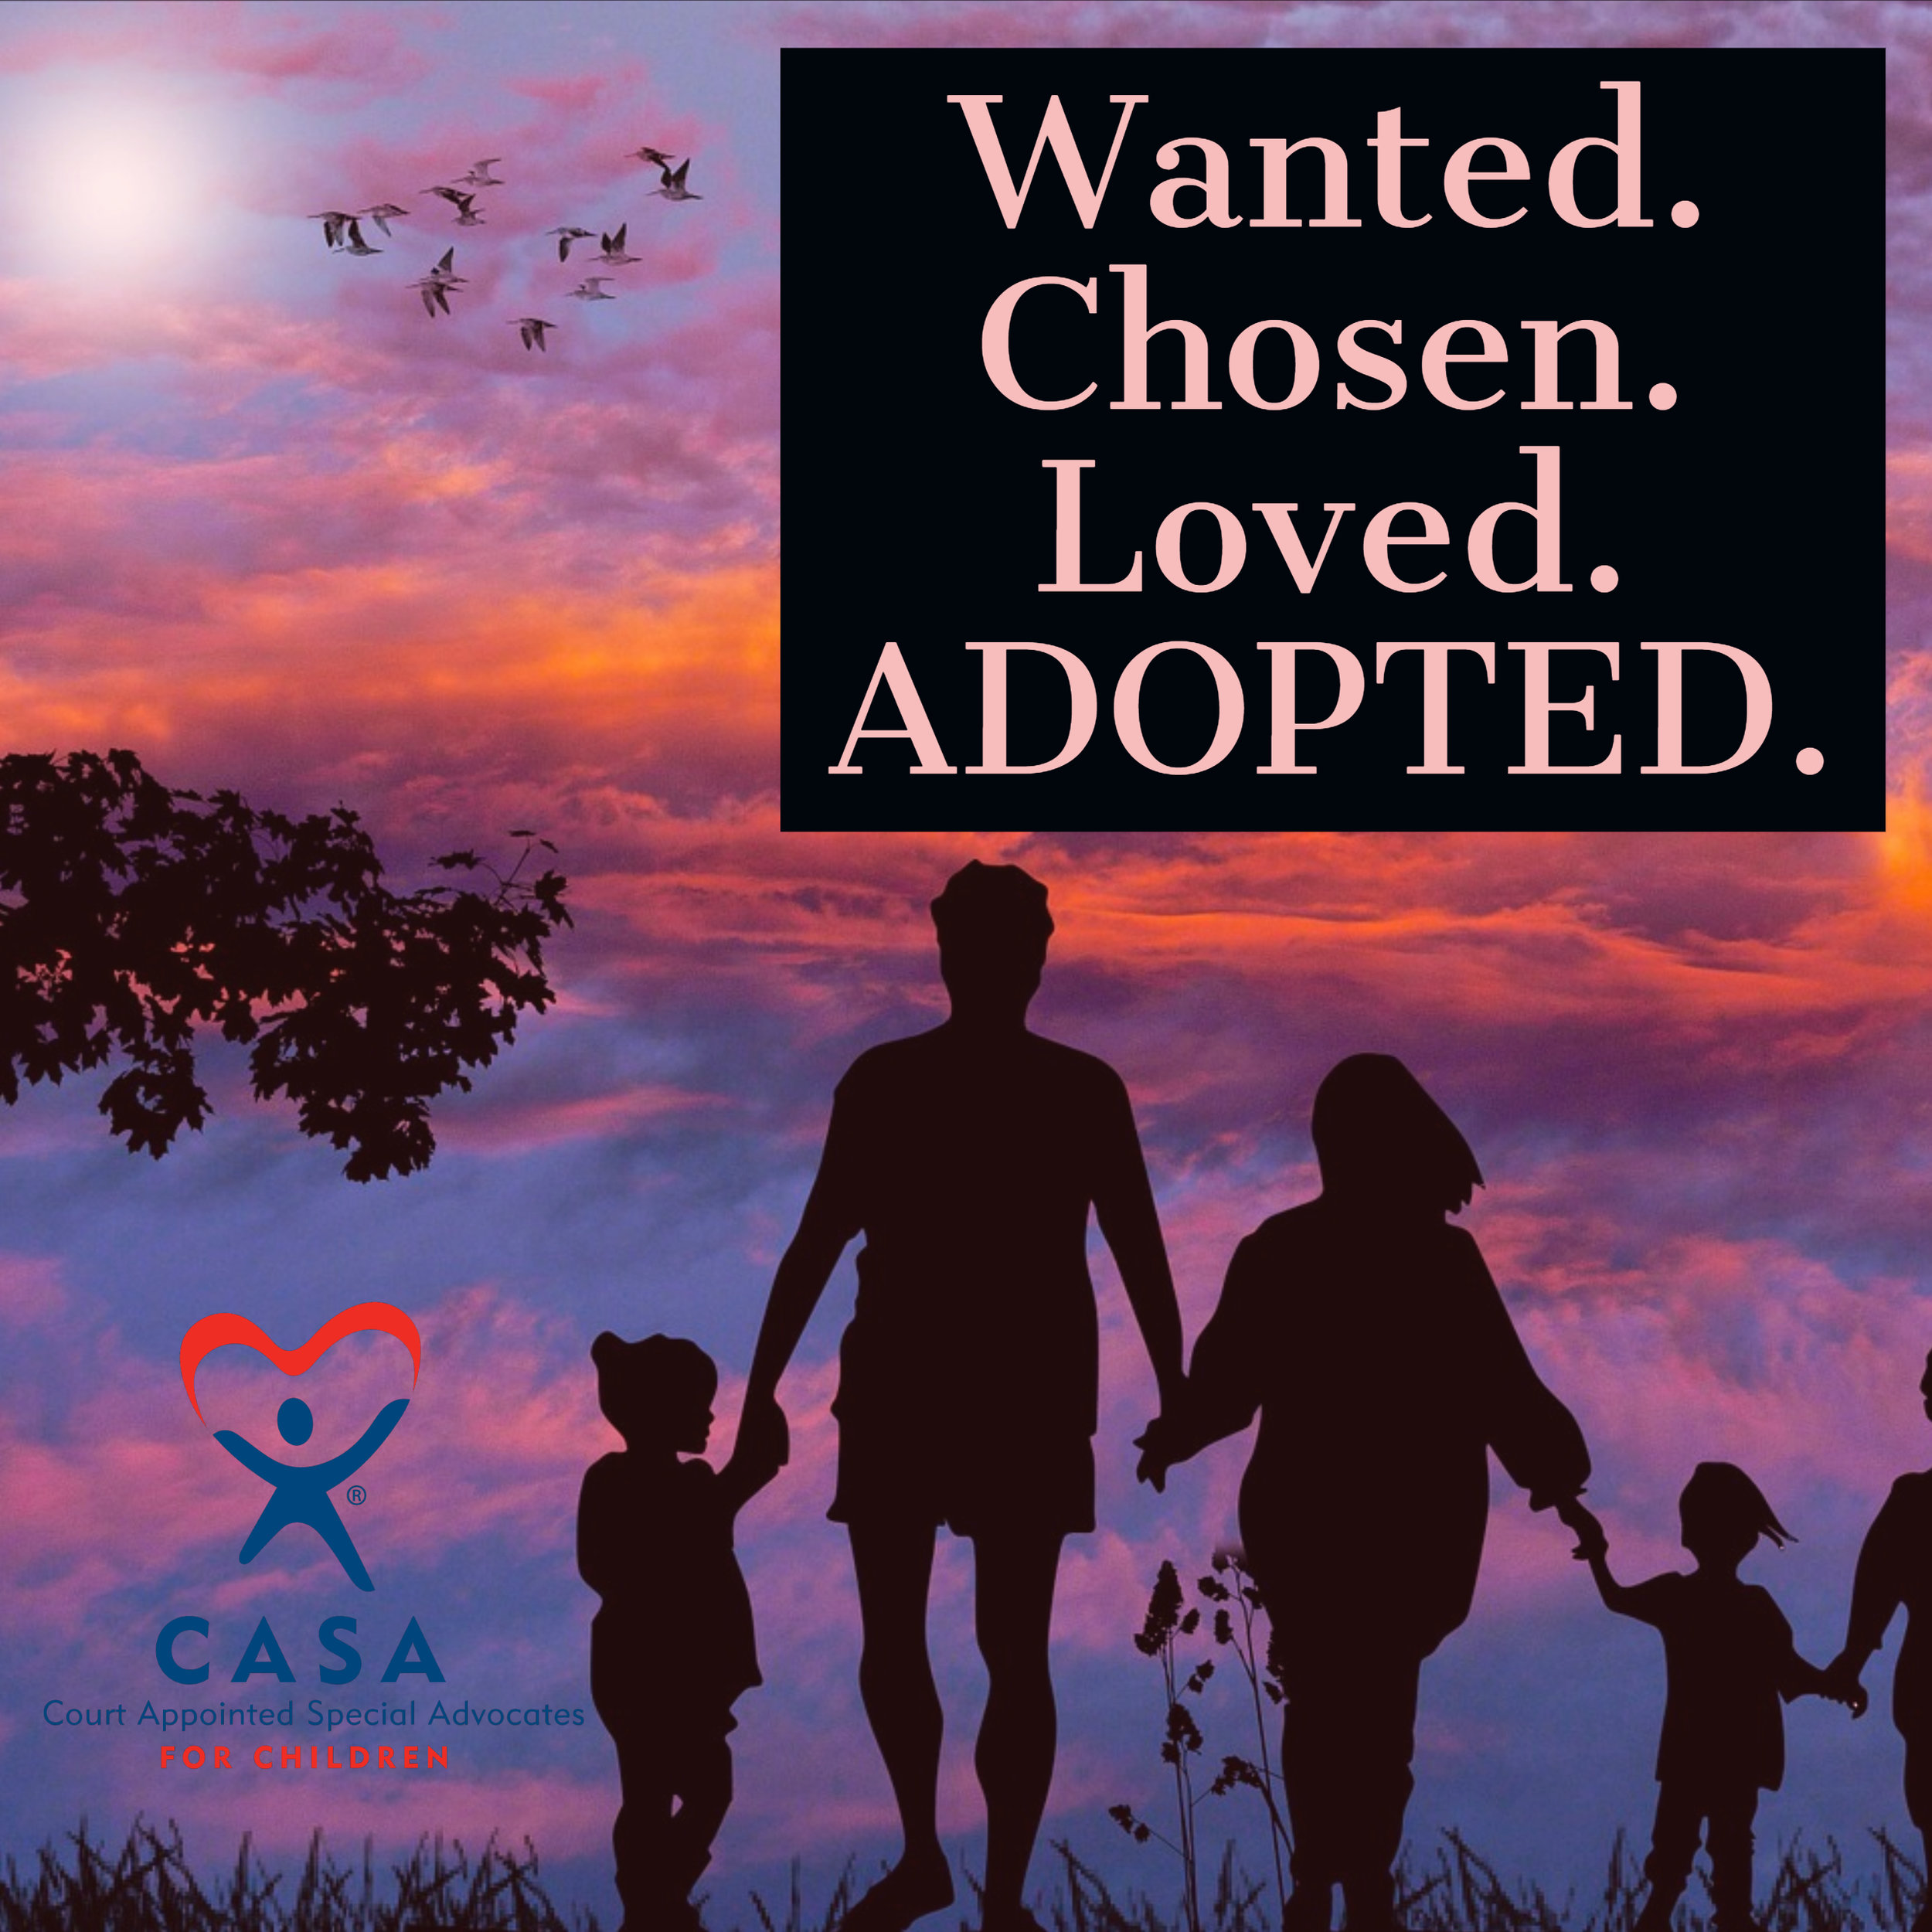 Wanted loved chosen adopted.jpg